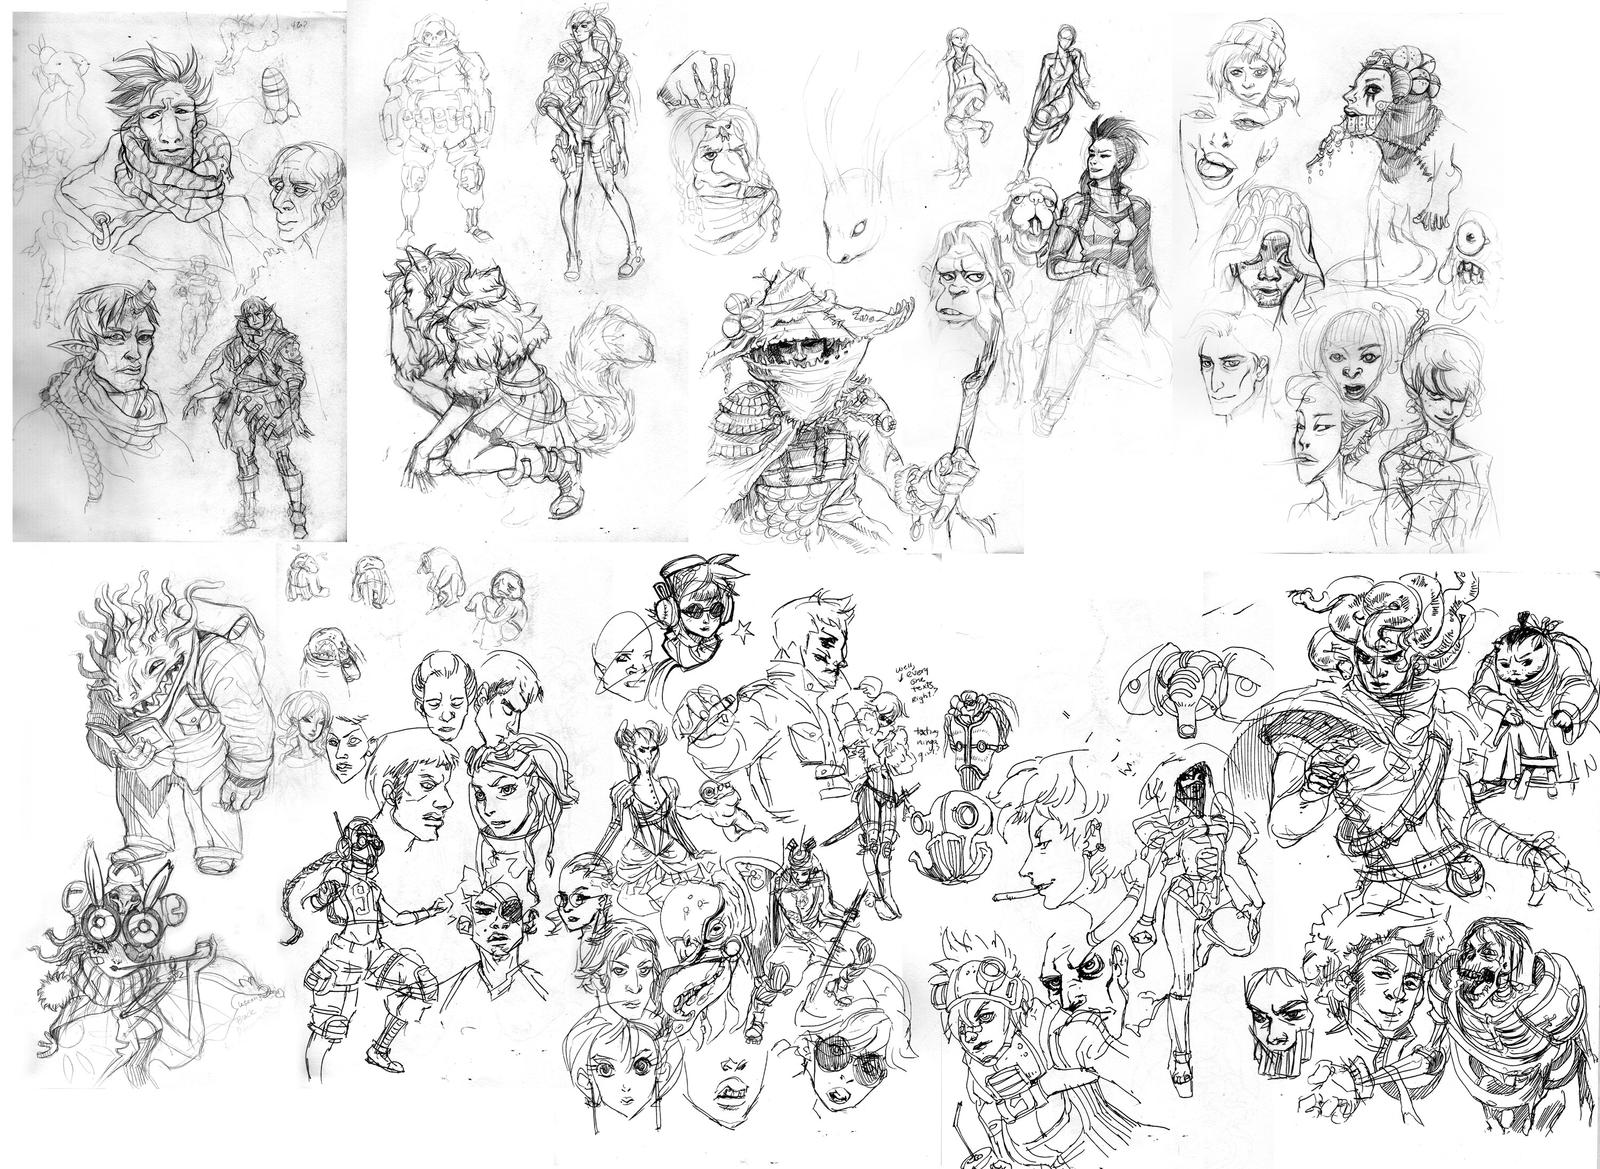 Sketch Dump Feb 22 By Mishinsilo On DeviantArt